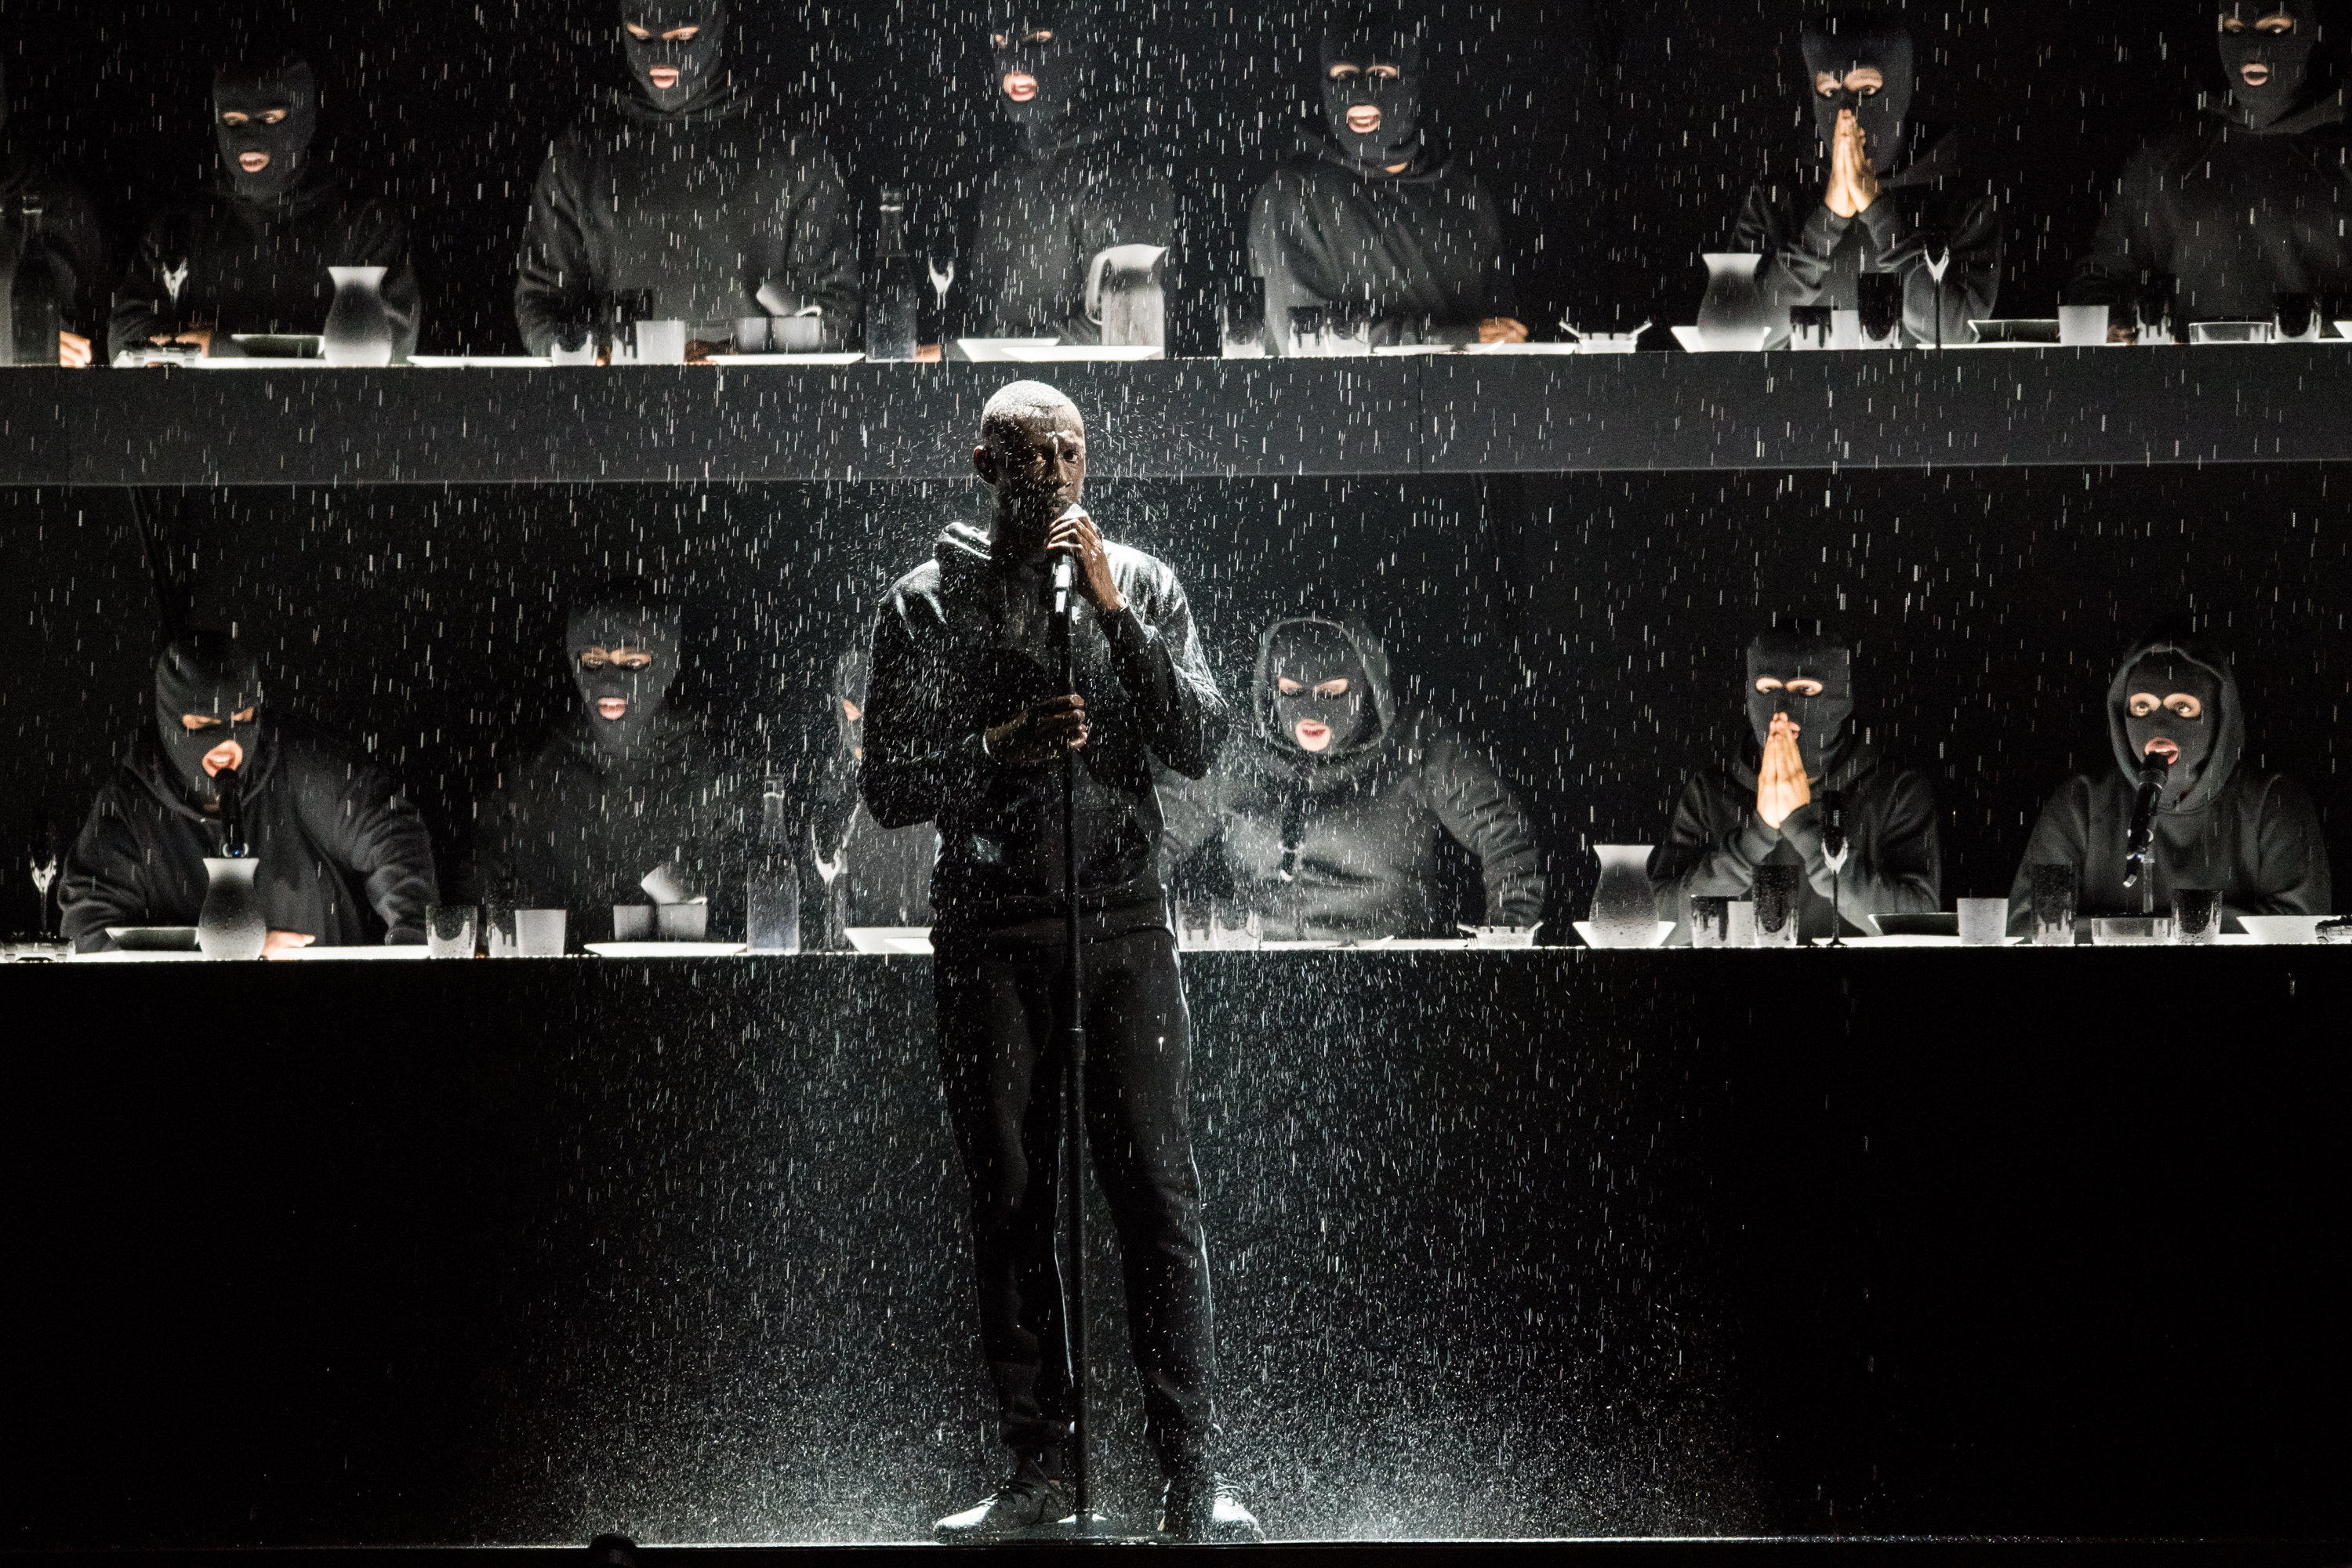 Stormzy Urges Fans To Sign Petition Calling On Theresa May To Appoint More Panel Members In Grenfell Inquiry